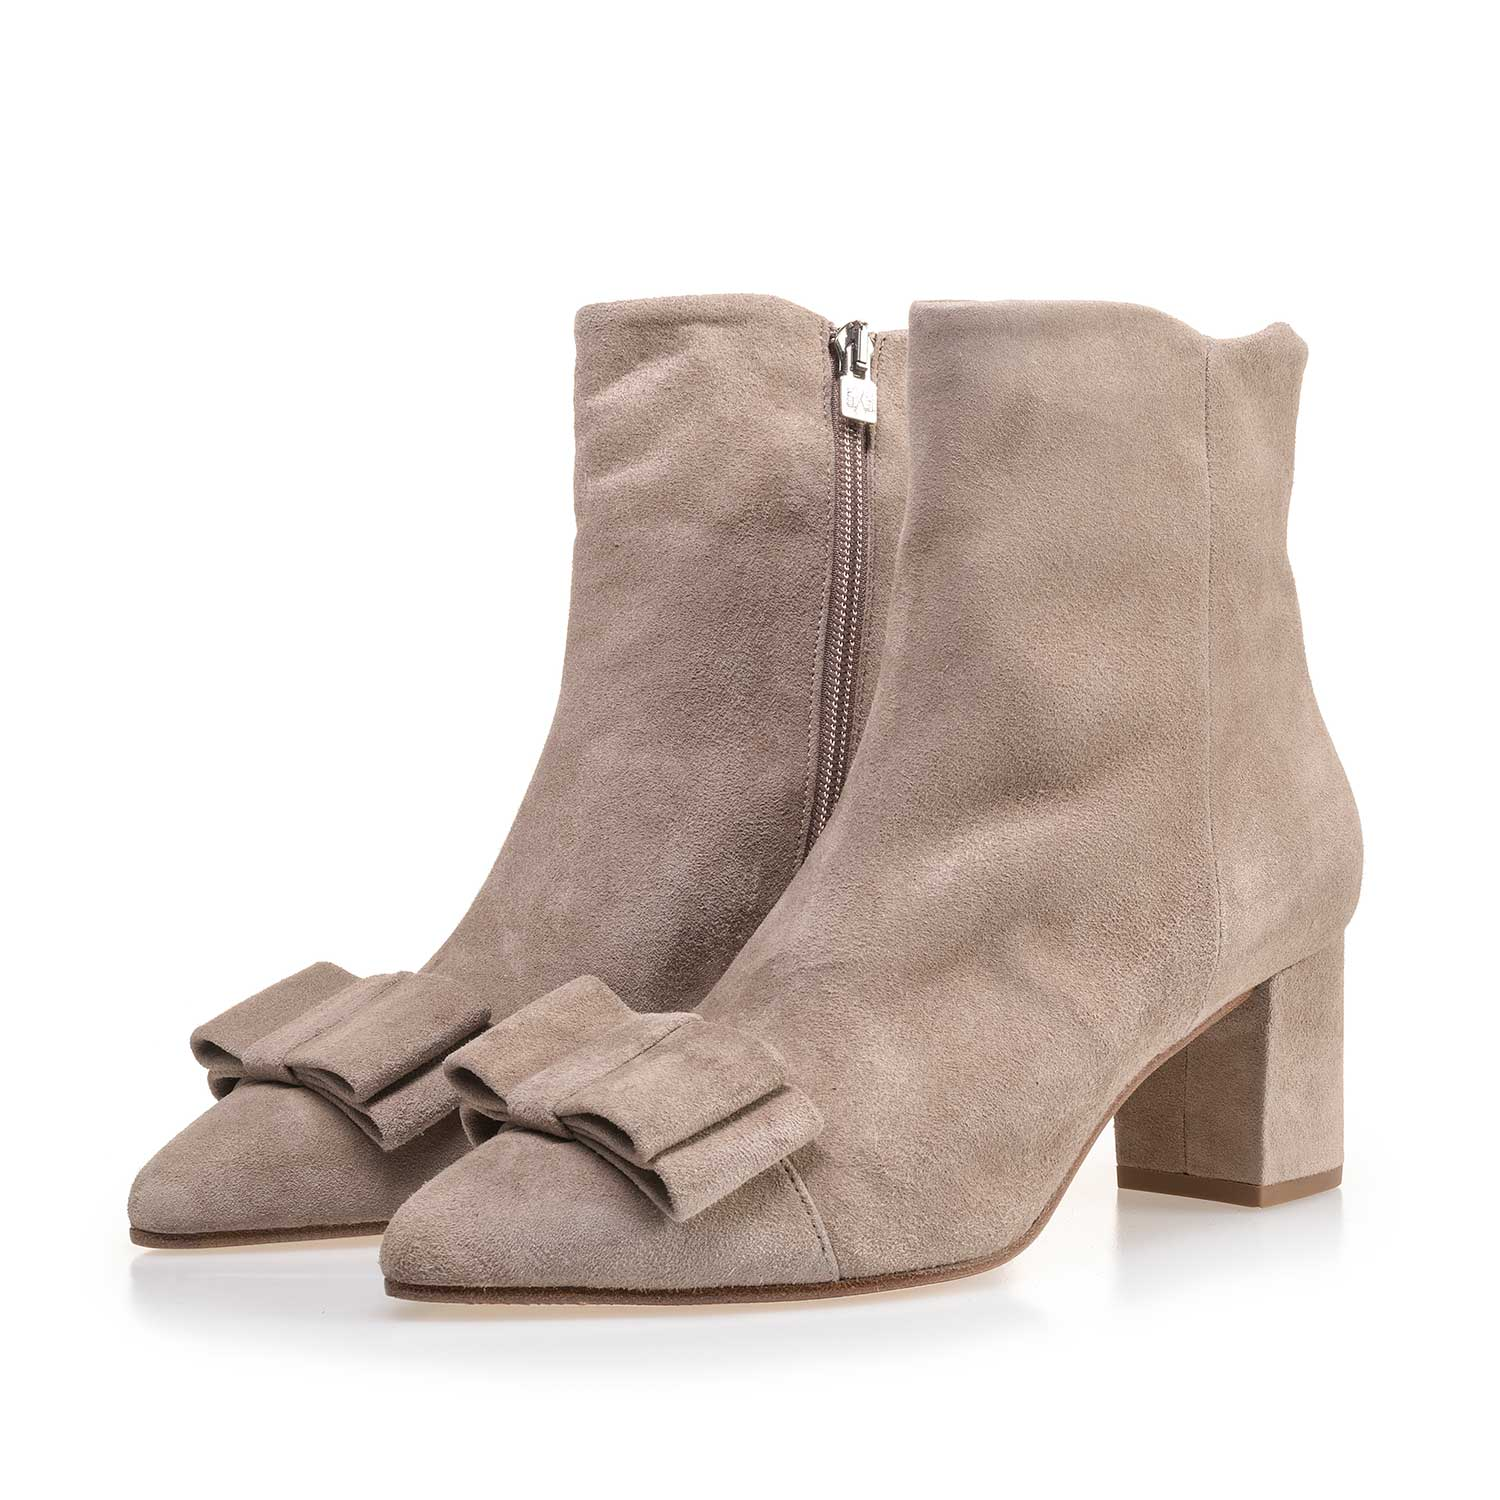 85187/04 - Taupe-coloured calf's suede leather ankle boot